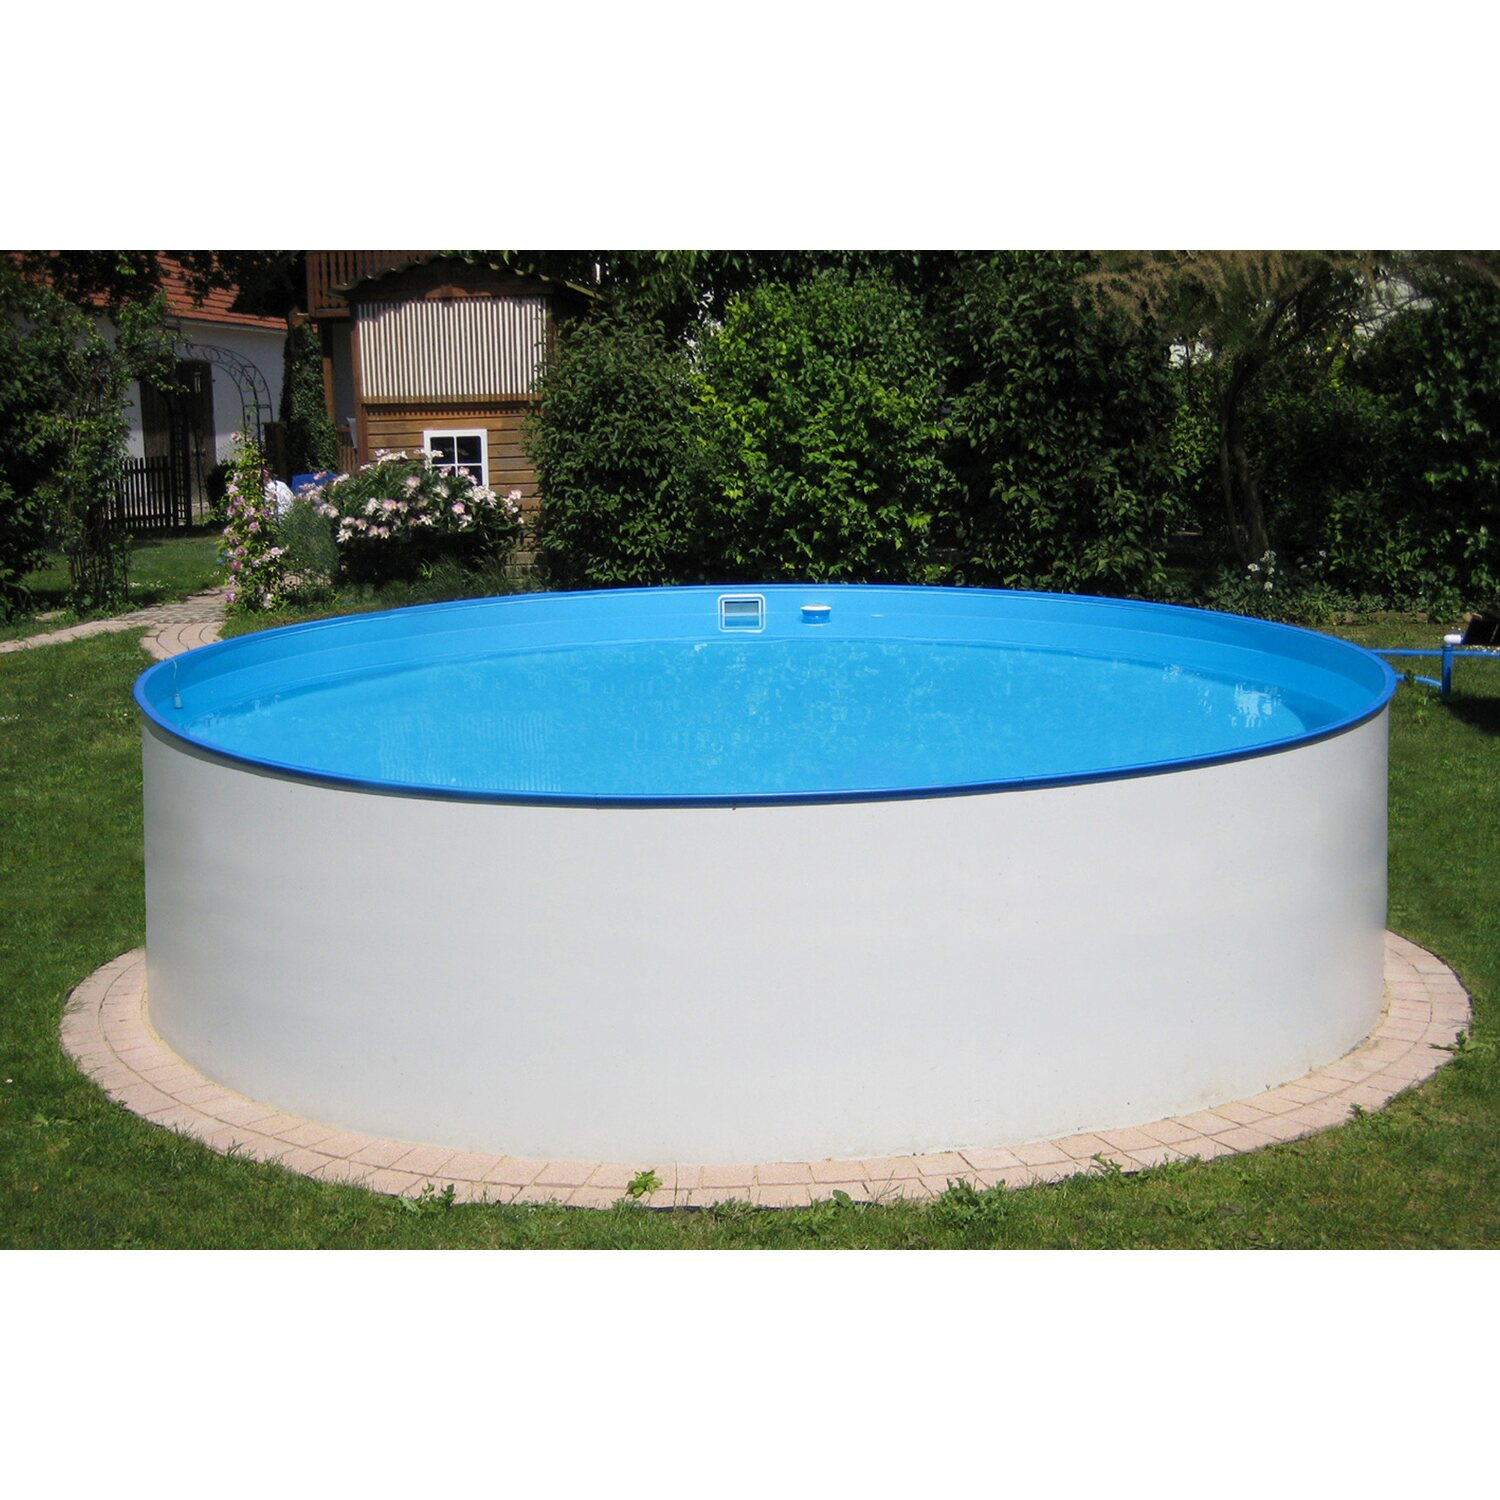 Summer fun stahlwand pool set almeria aufstellbecken 350 for Swimmingpool verkleidung